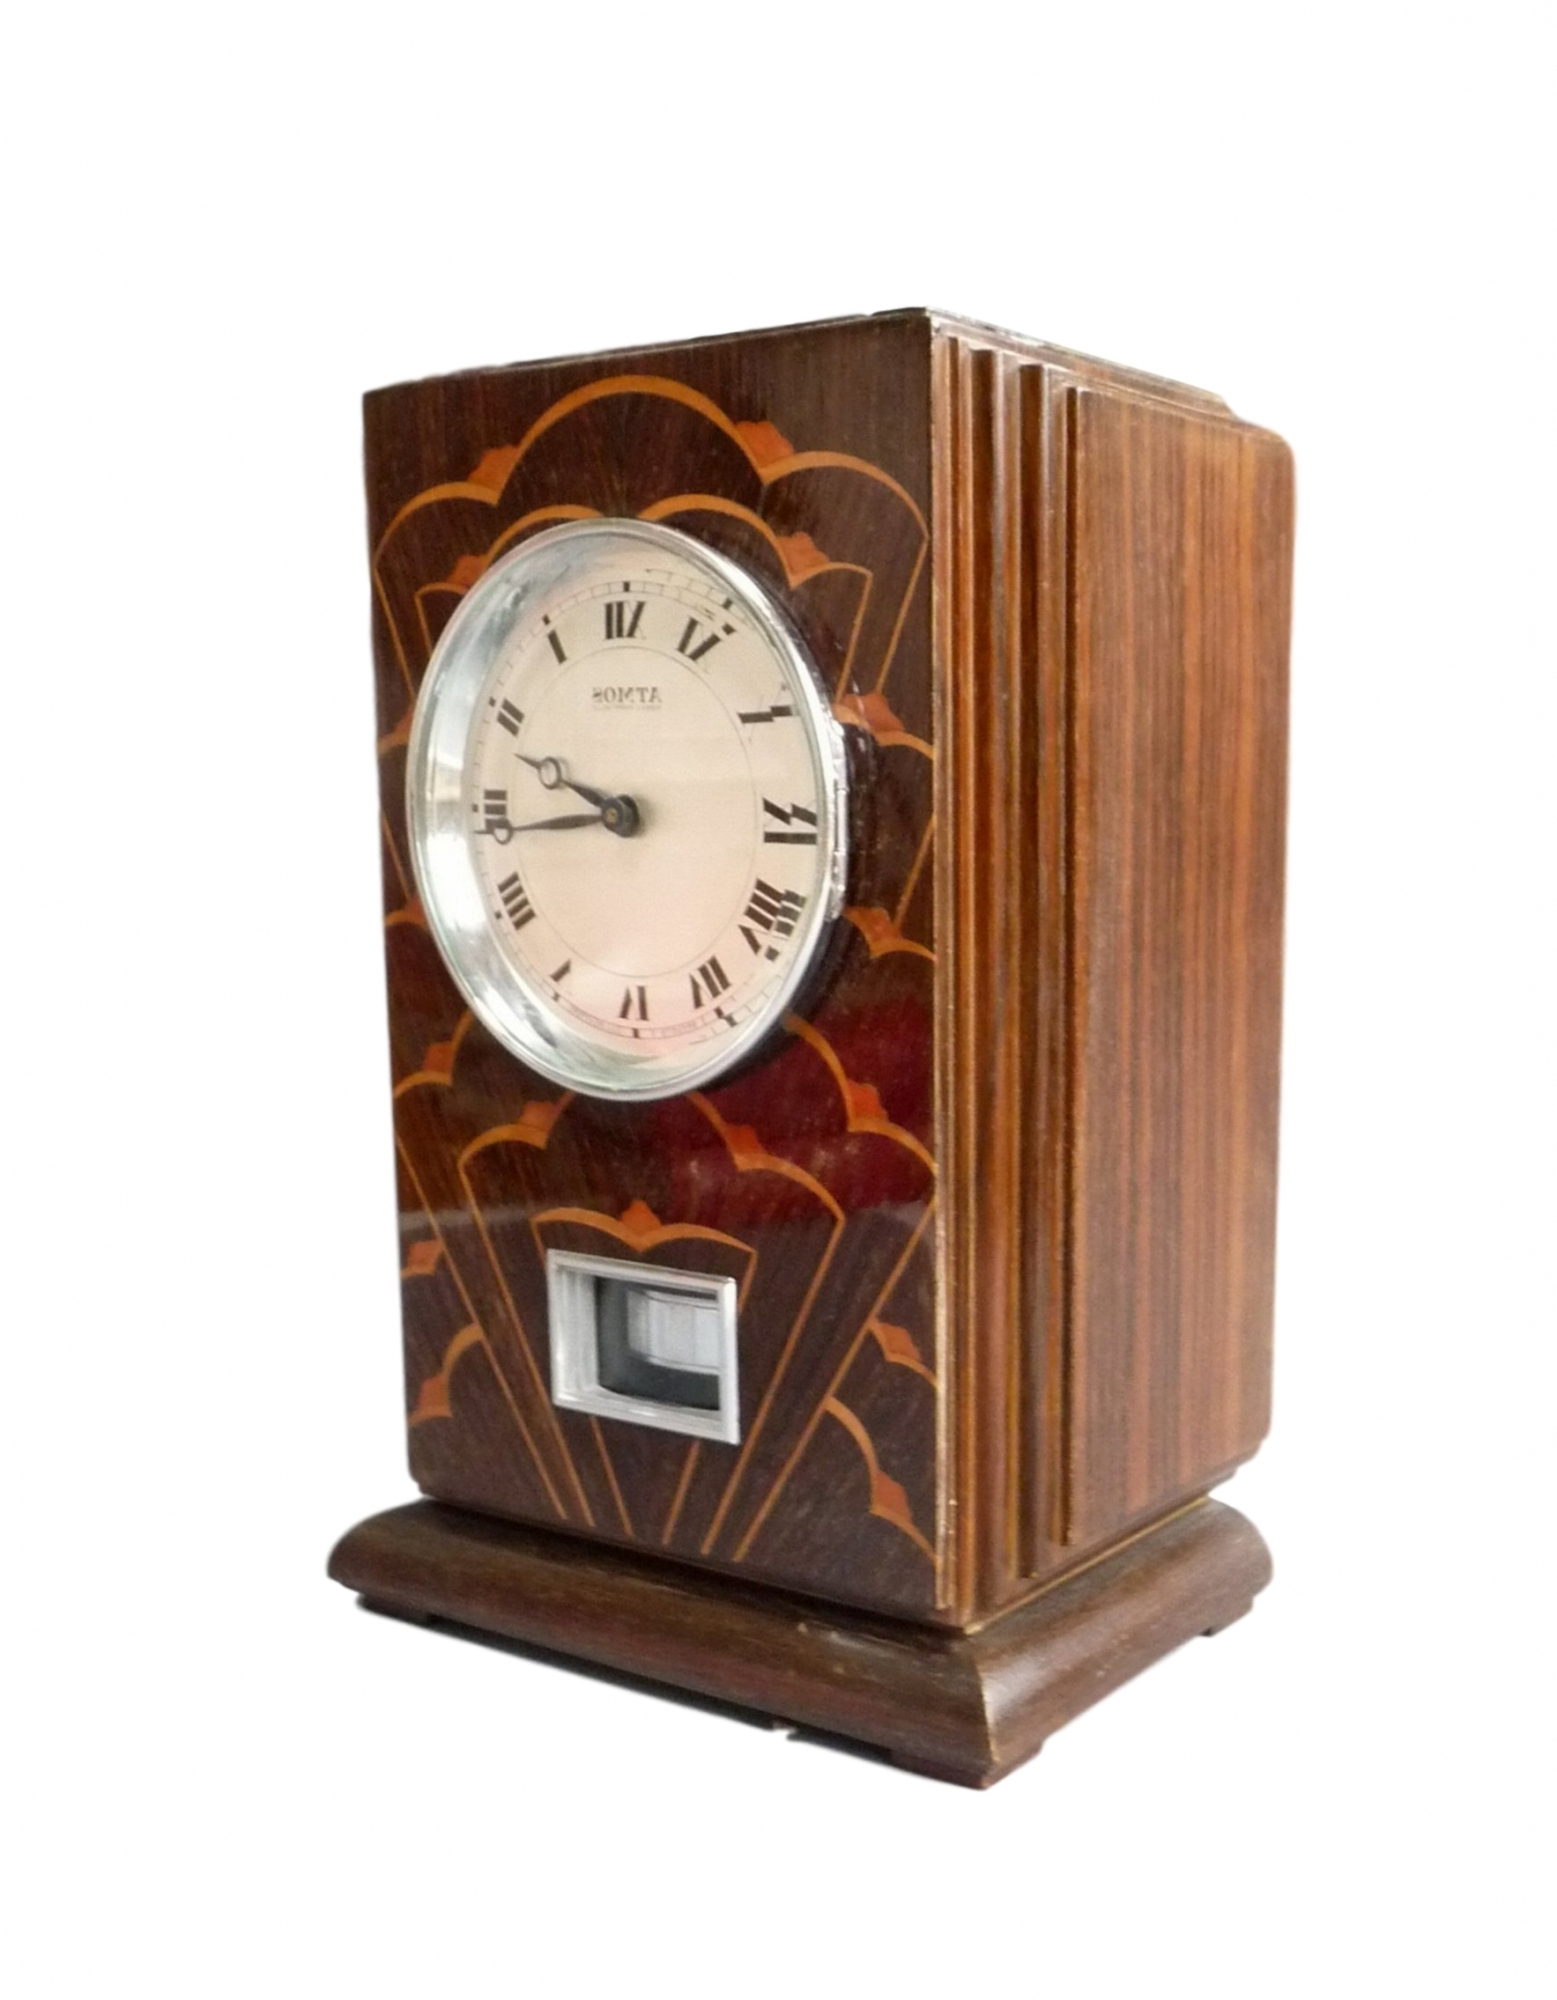 Art Deco Wall Clock With Regard To Famous M169 Coromandel Wooden Reutter Atmos Clock, Art Deco Period And (View 8 of 15)